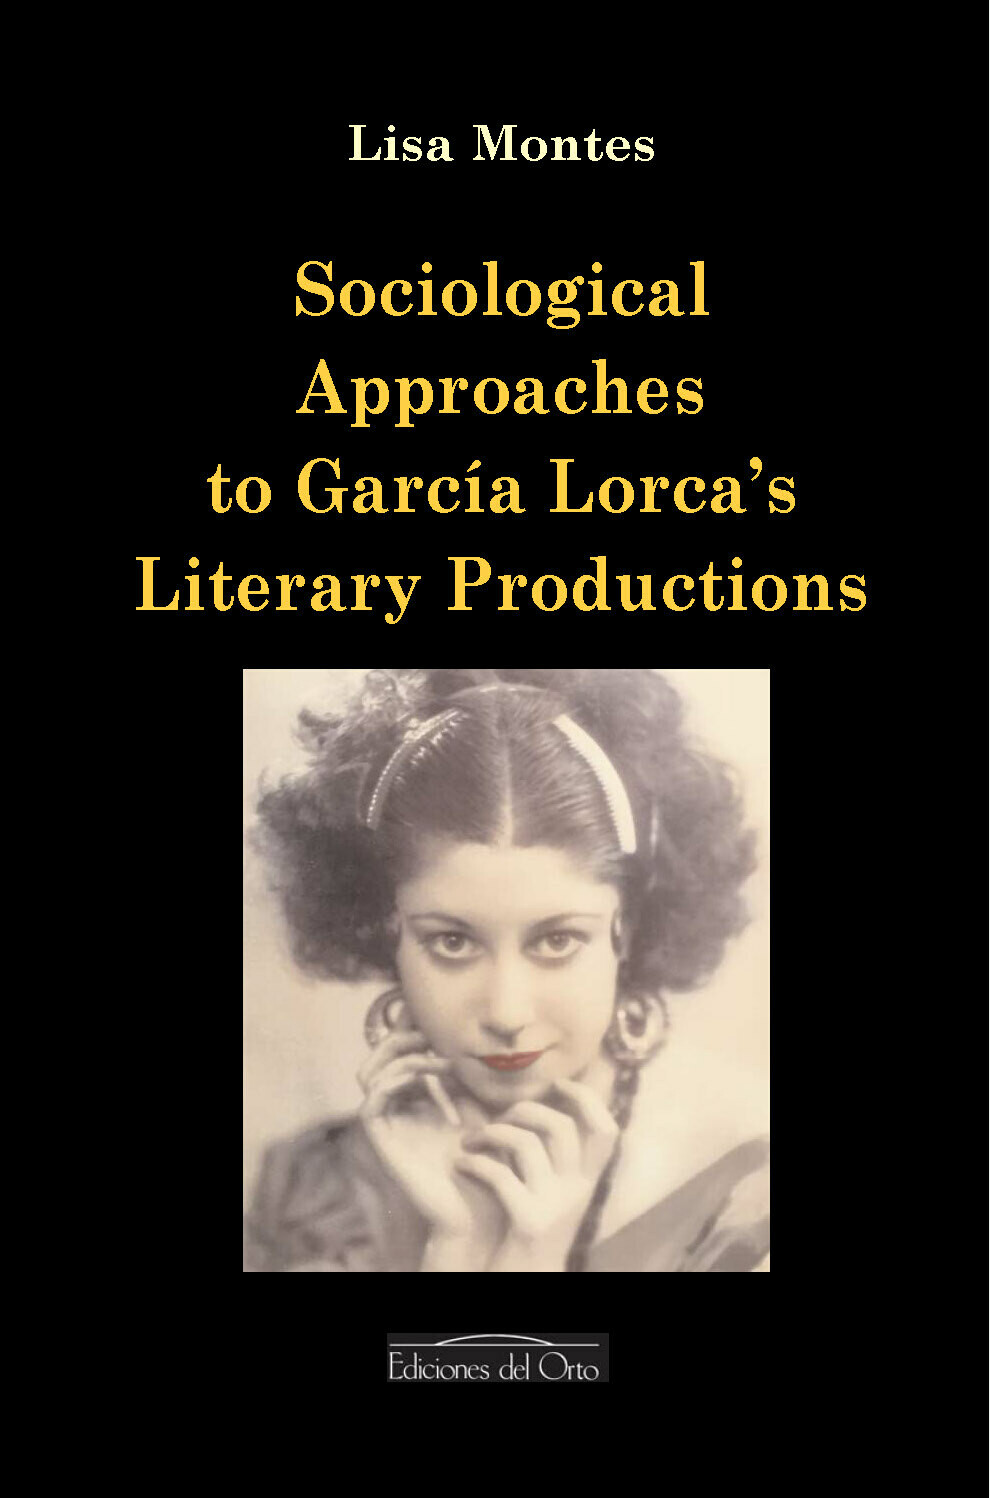 SOCIOLOGICAL APPROACHES TO GARCIA LORCA´S LITERARY PRODUCTIONS